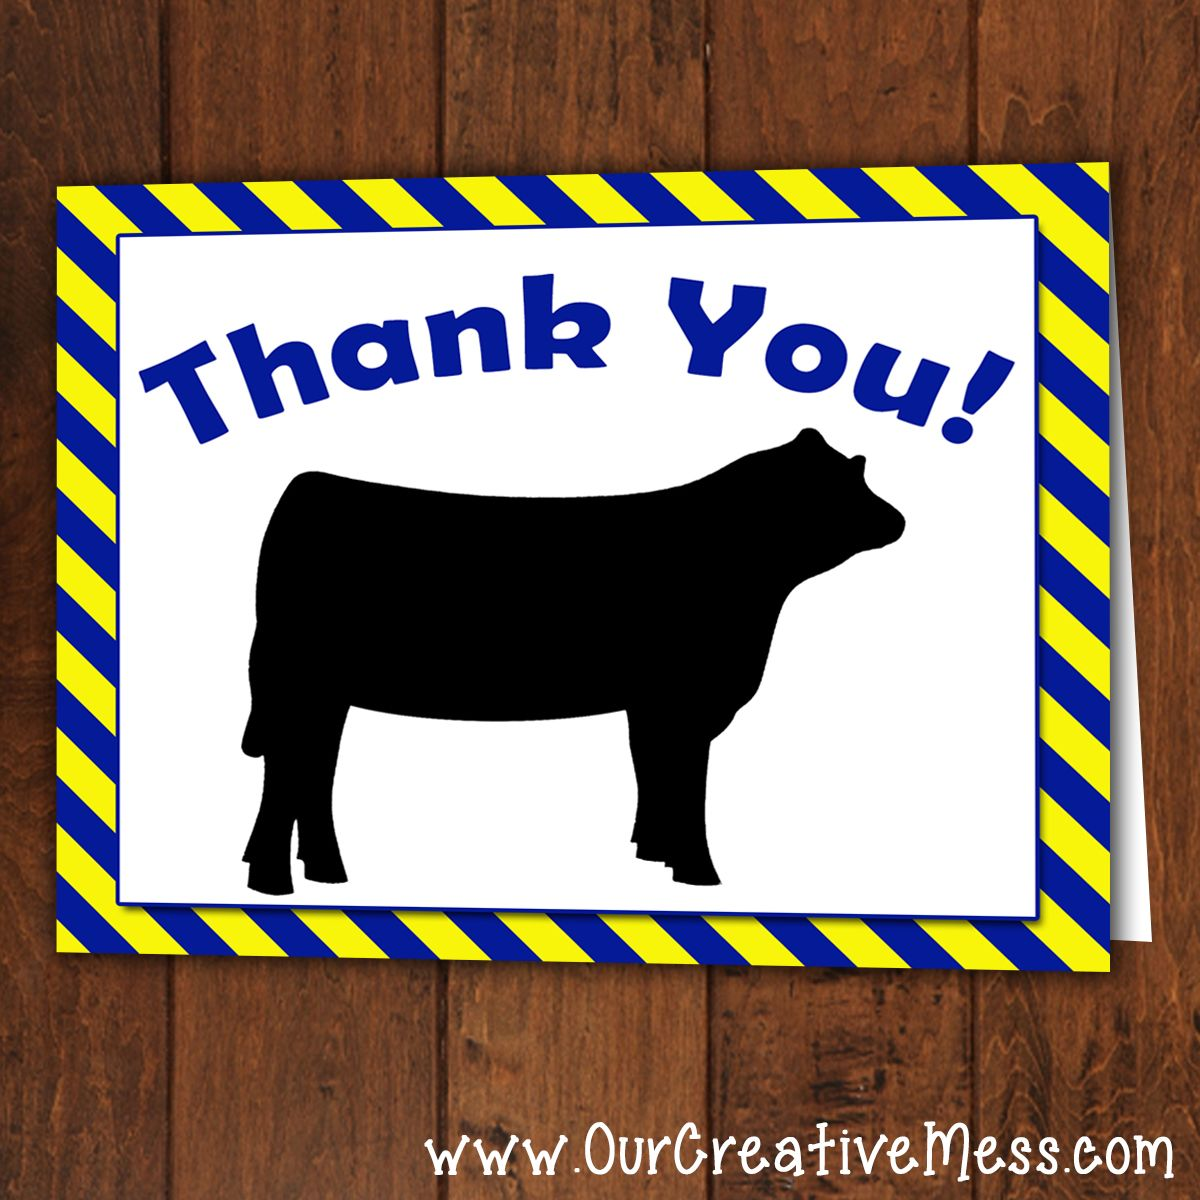 Stock Show Folded Stripped Thank You Auction Basket Letter Gifts Auction Baskets